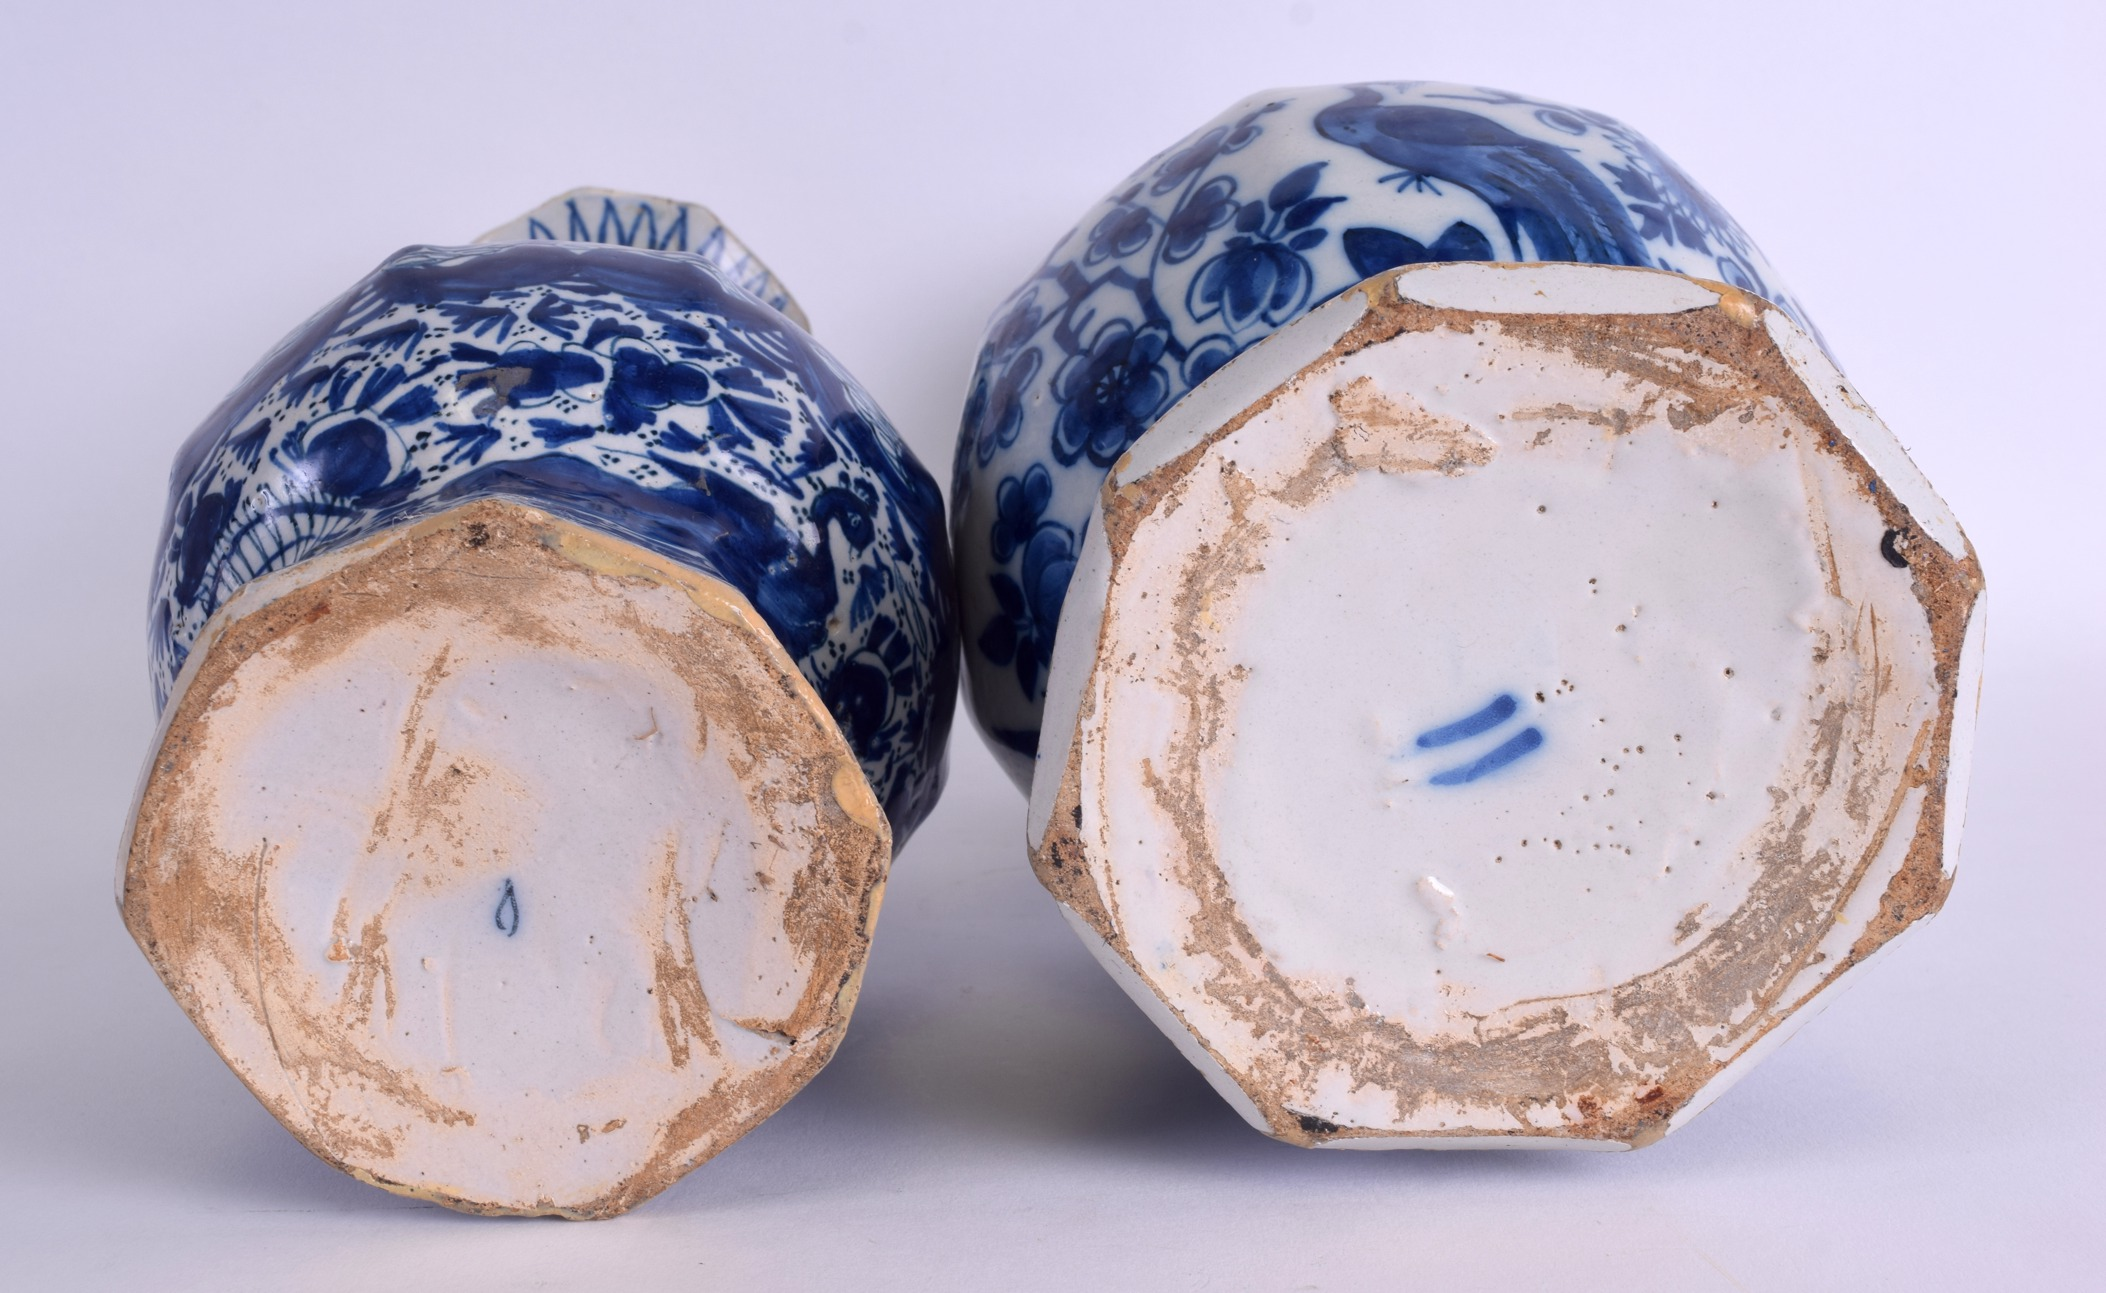 Lot 85 - TWO LARGE 18TH CENTURY DELFT BLUE AND WHITE VASES painted with flowers. 31 cm & 27 cm high. (2)